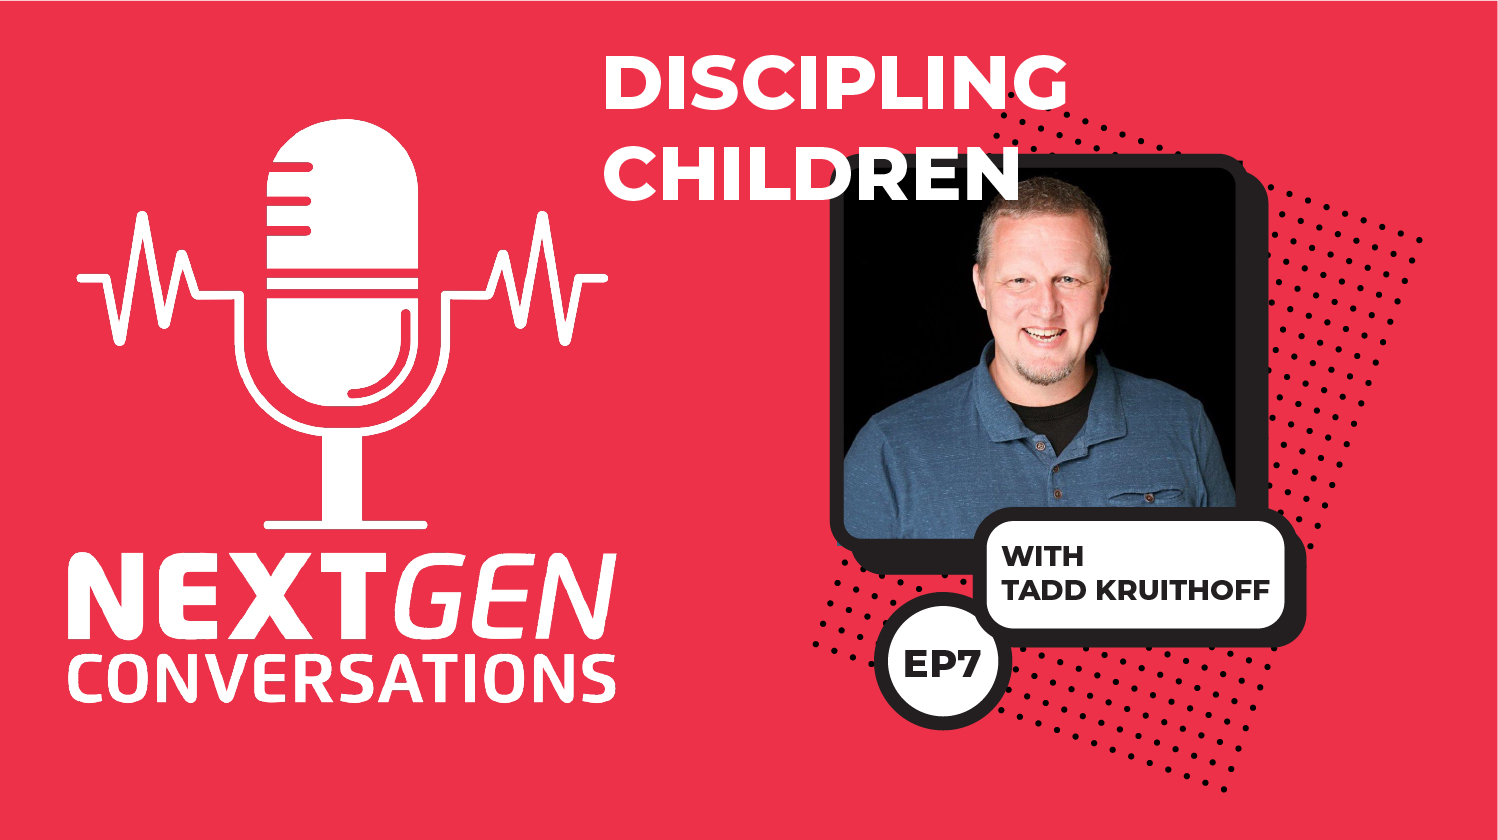 NextGen Conversations: Discipling Children with Rev. Tadd Kruithoff